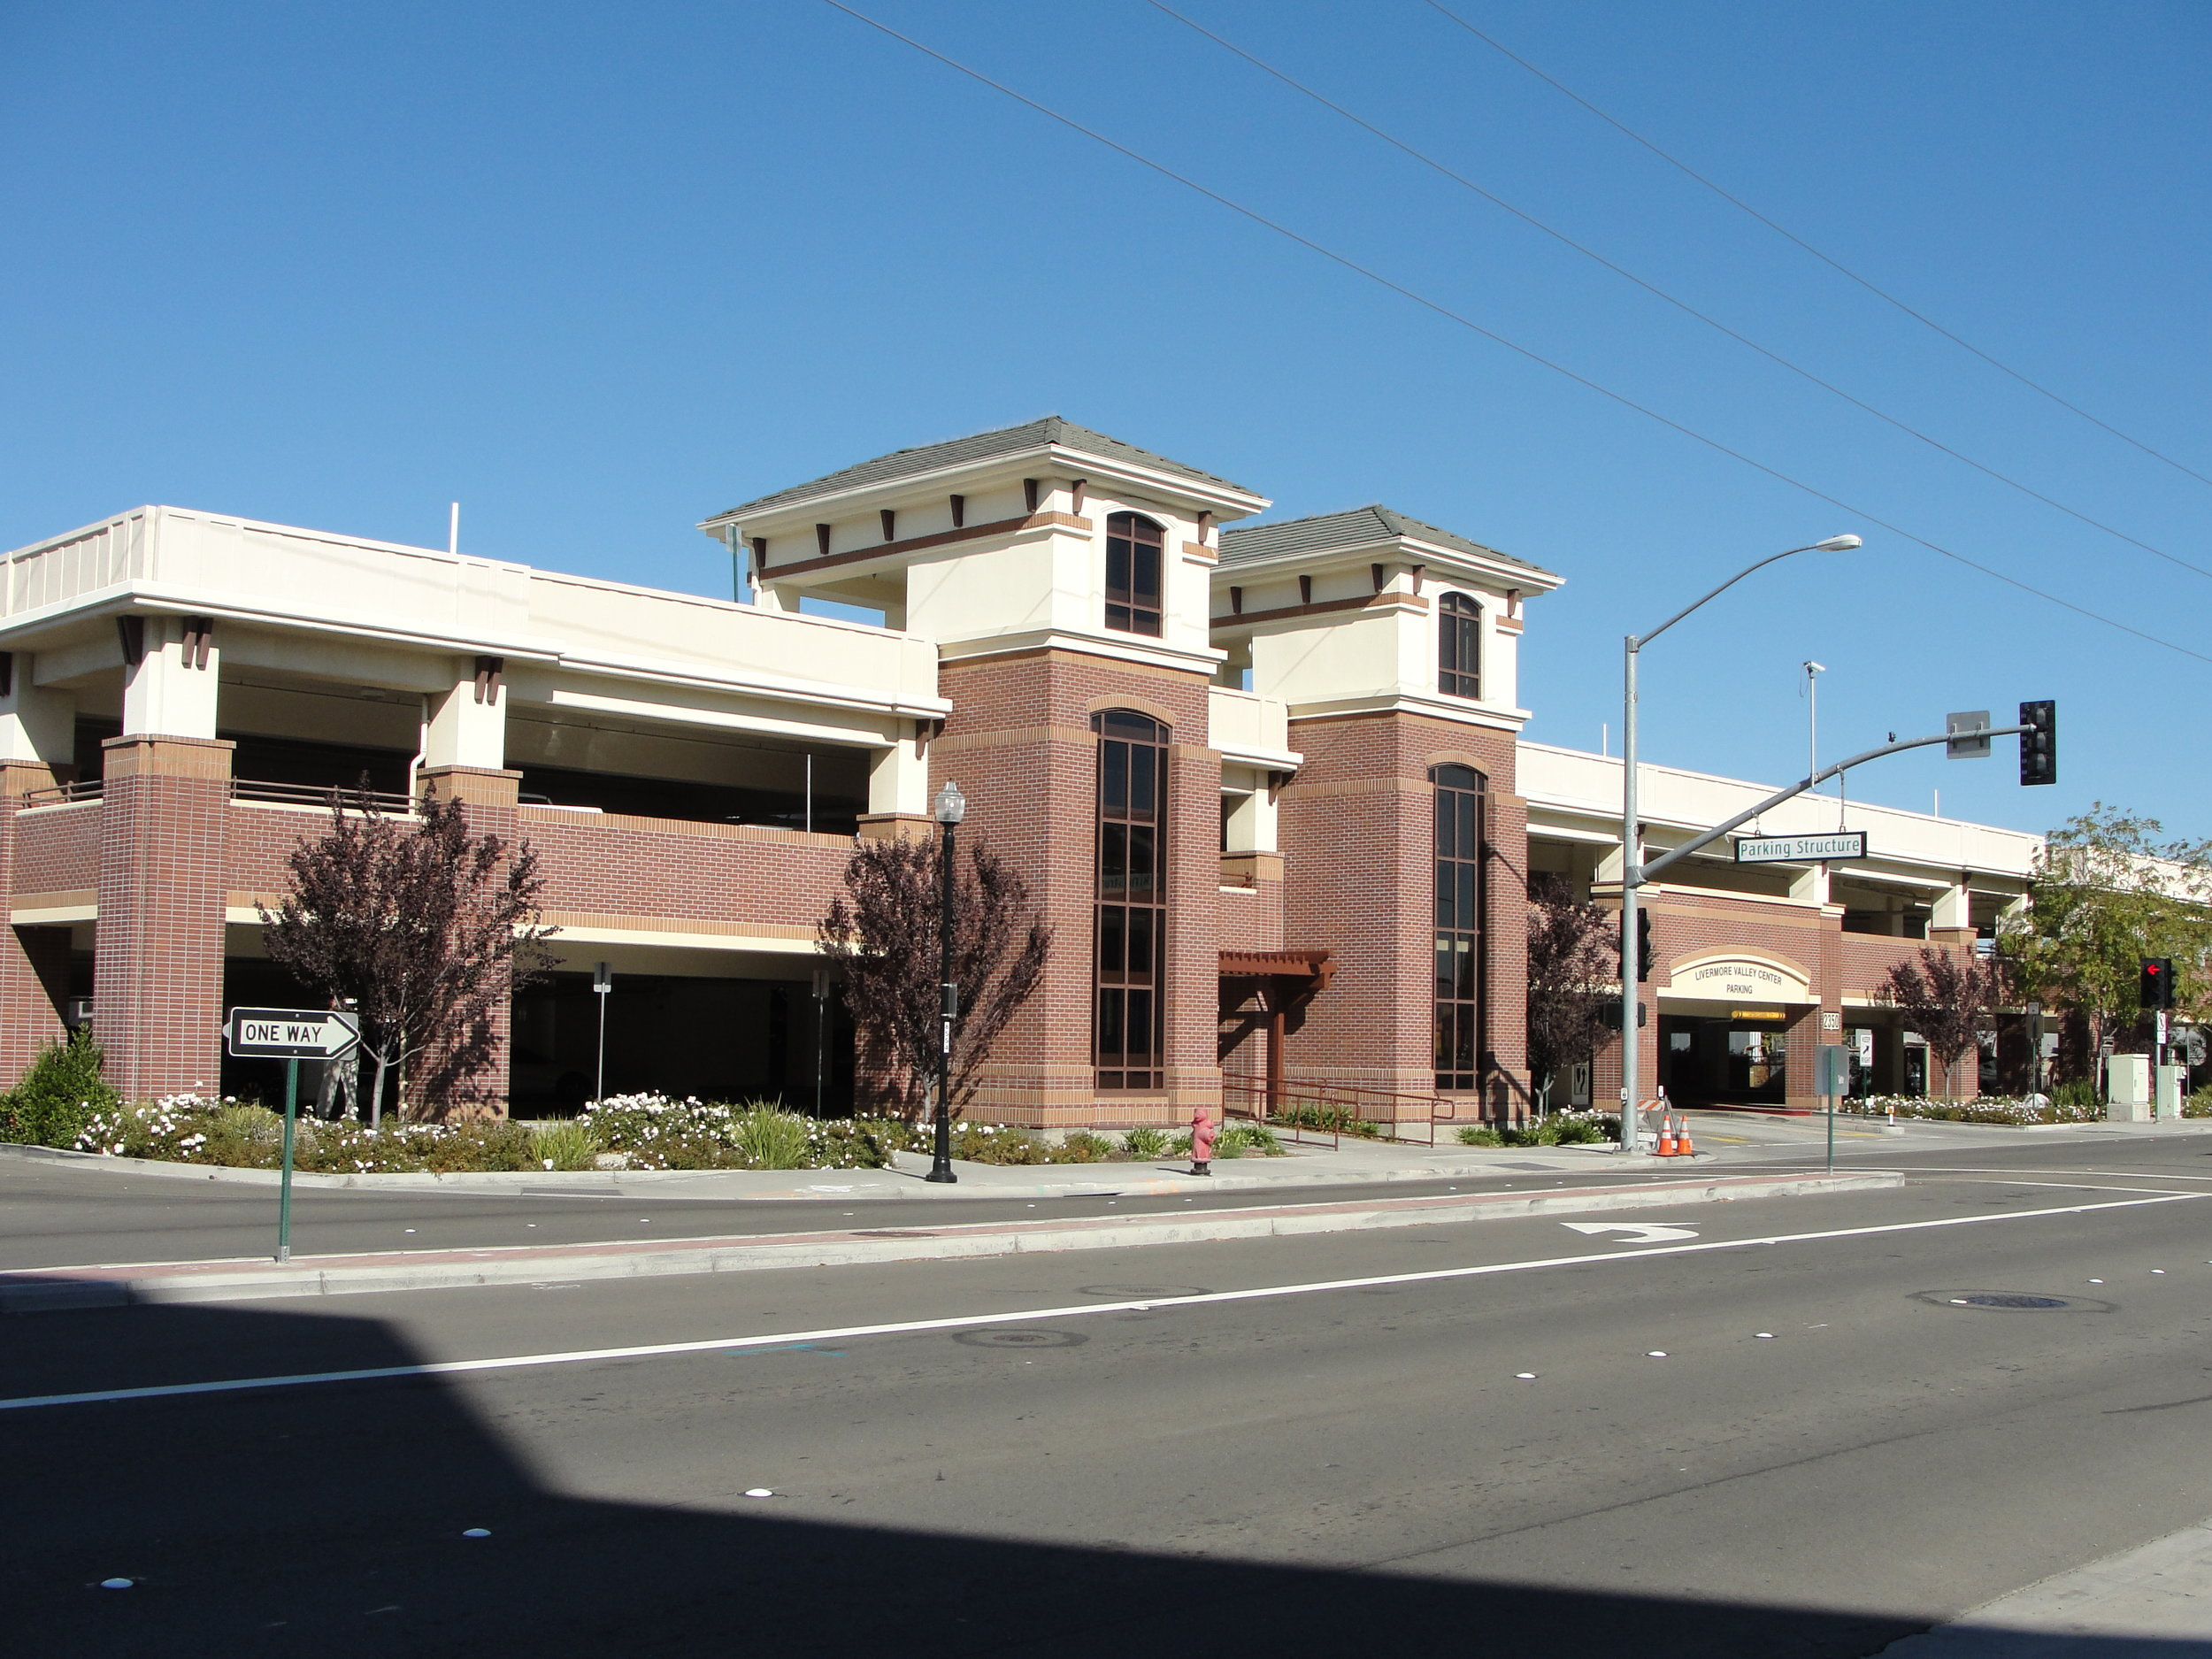 LIVERMORE VALLEY CENTER PARKING STRUCTURE |  Livermore, CA